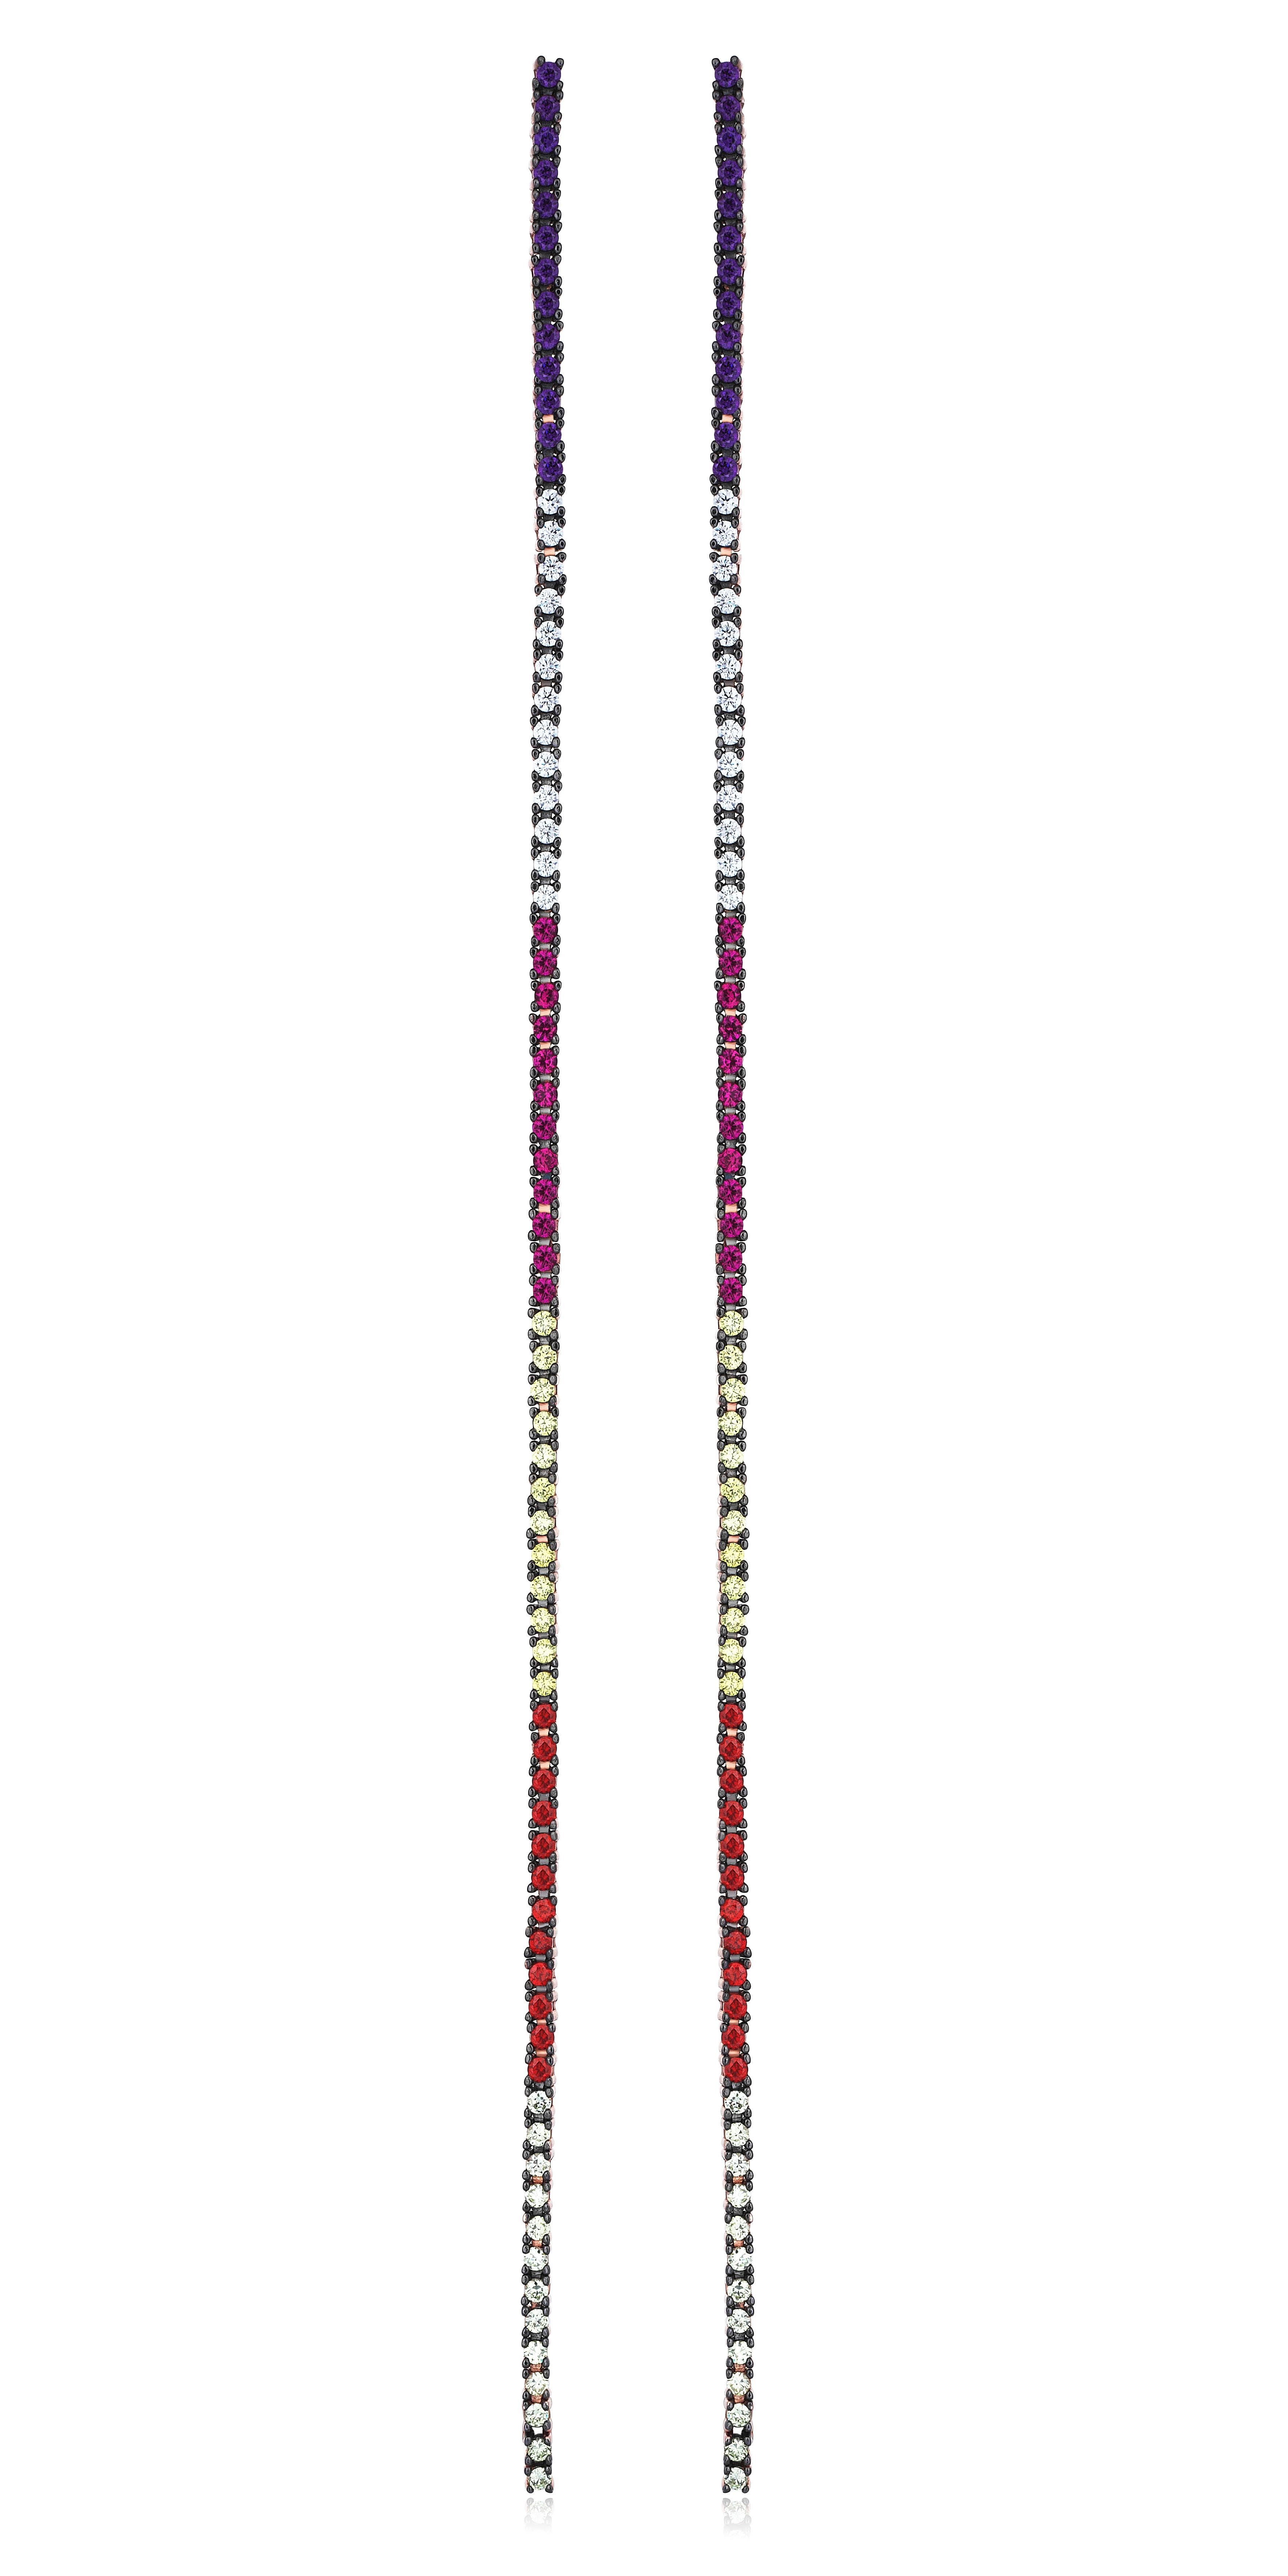 Upside Down Earrings by Talita London on curated-crowd.com